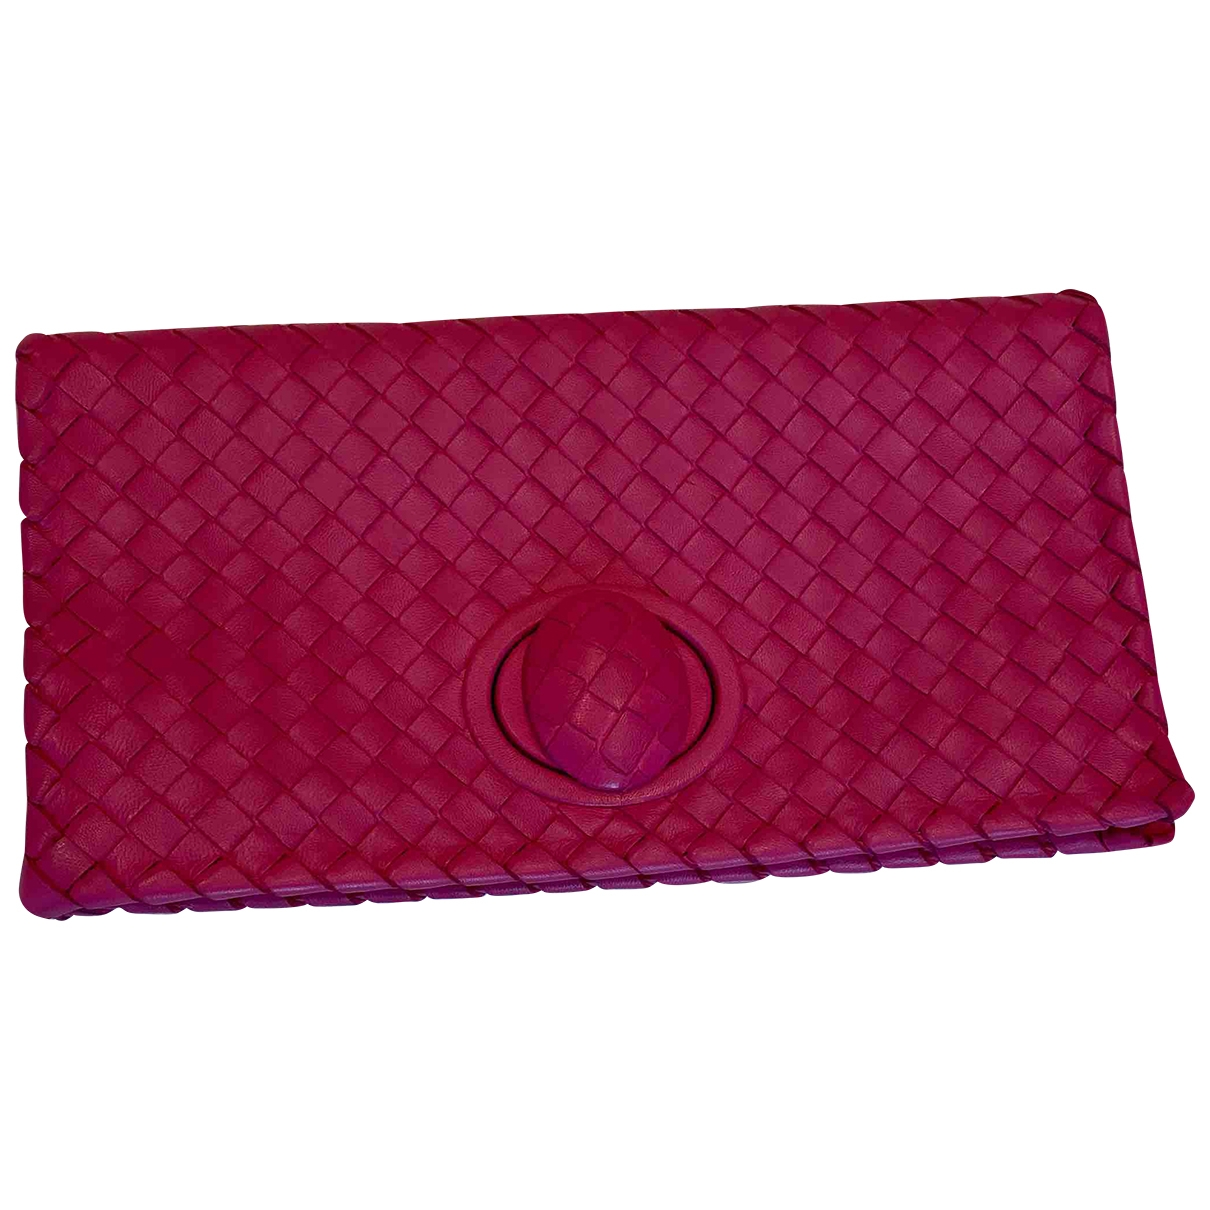 Bottega Veneta \N Clutch in  Rosa Leder